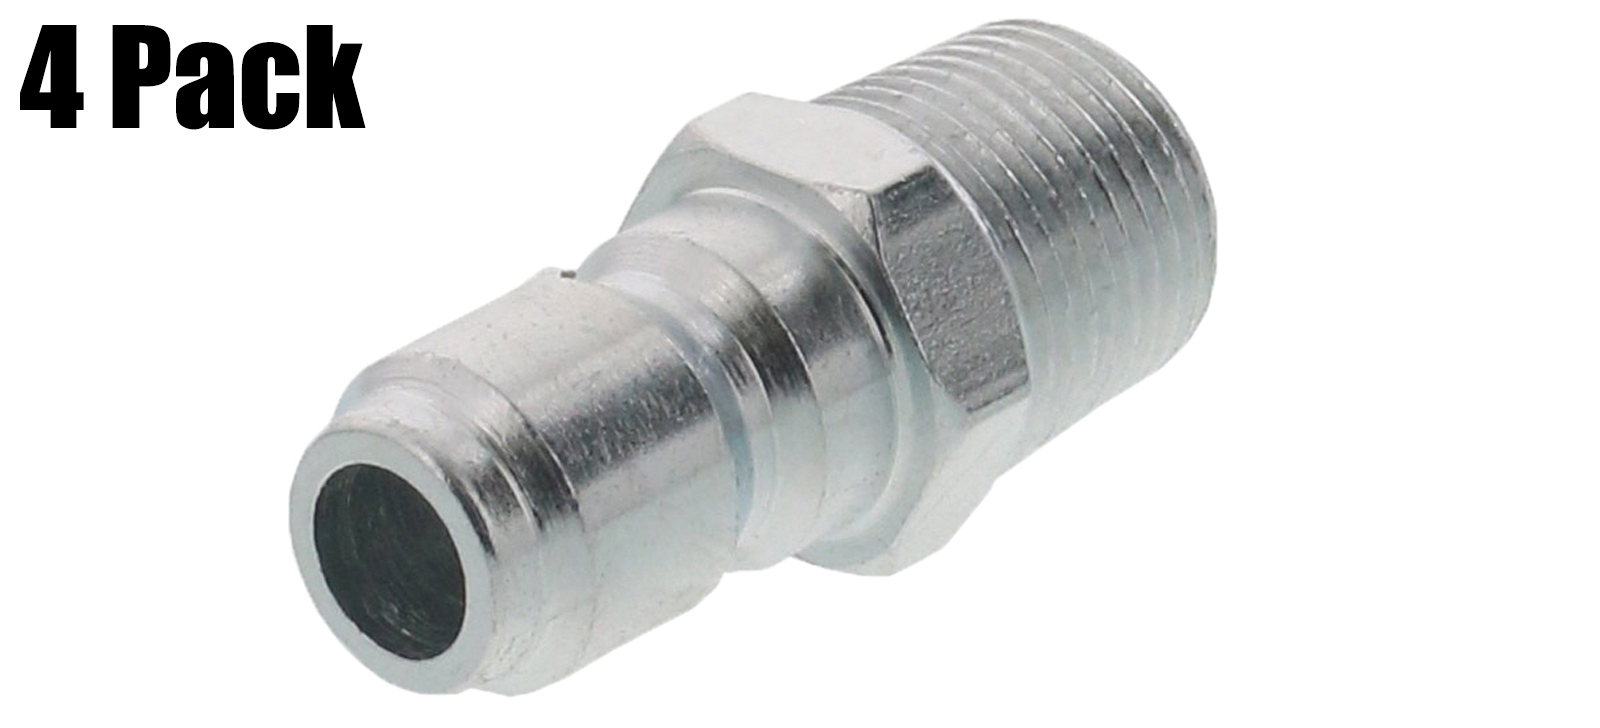 """General Pump Pressure Washer 3 8"""" Male NPT-M Quick Connect Plug 4000 PSI (QTY 4) by General Pump"""